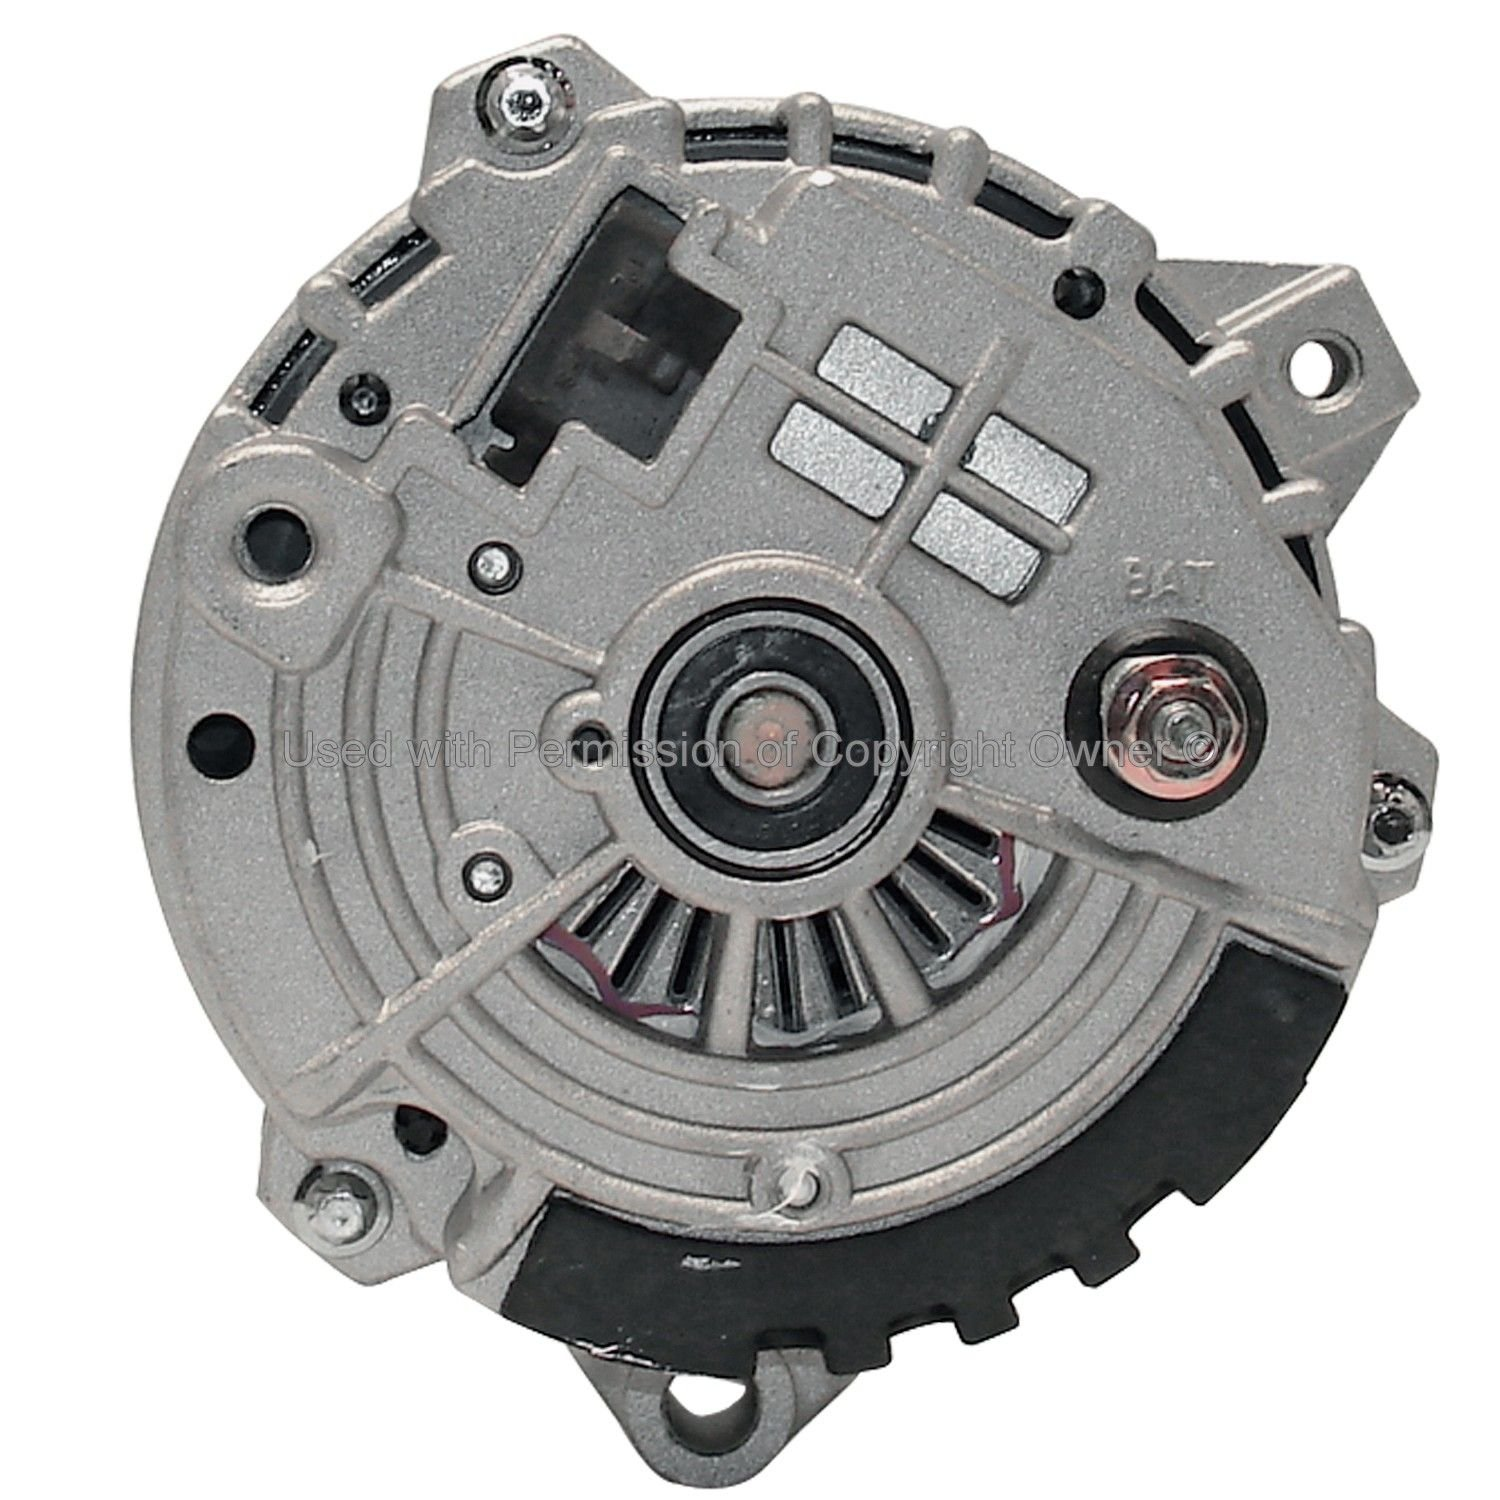 1992 cadillac commercial chassis alternator 8 cyl 5 7l mpa 7991611 with base package